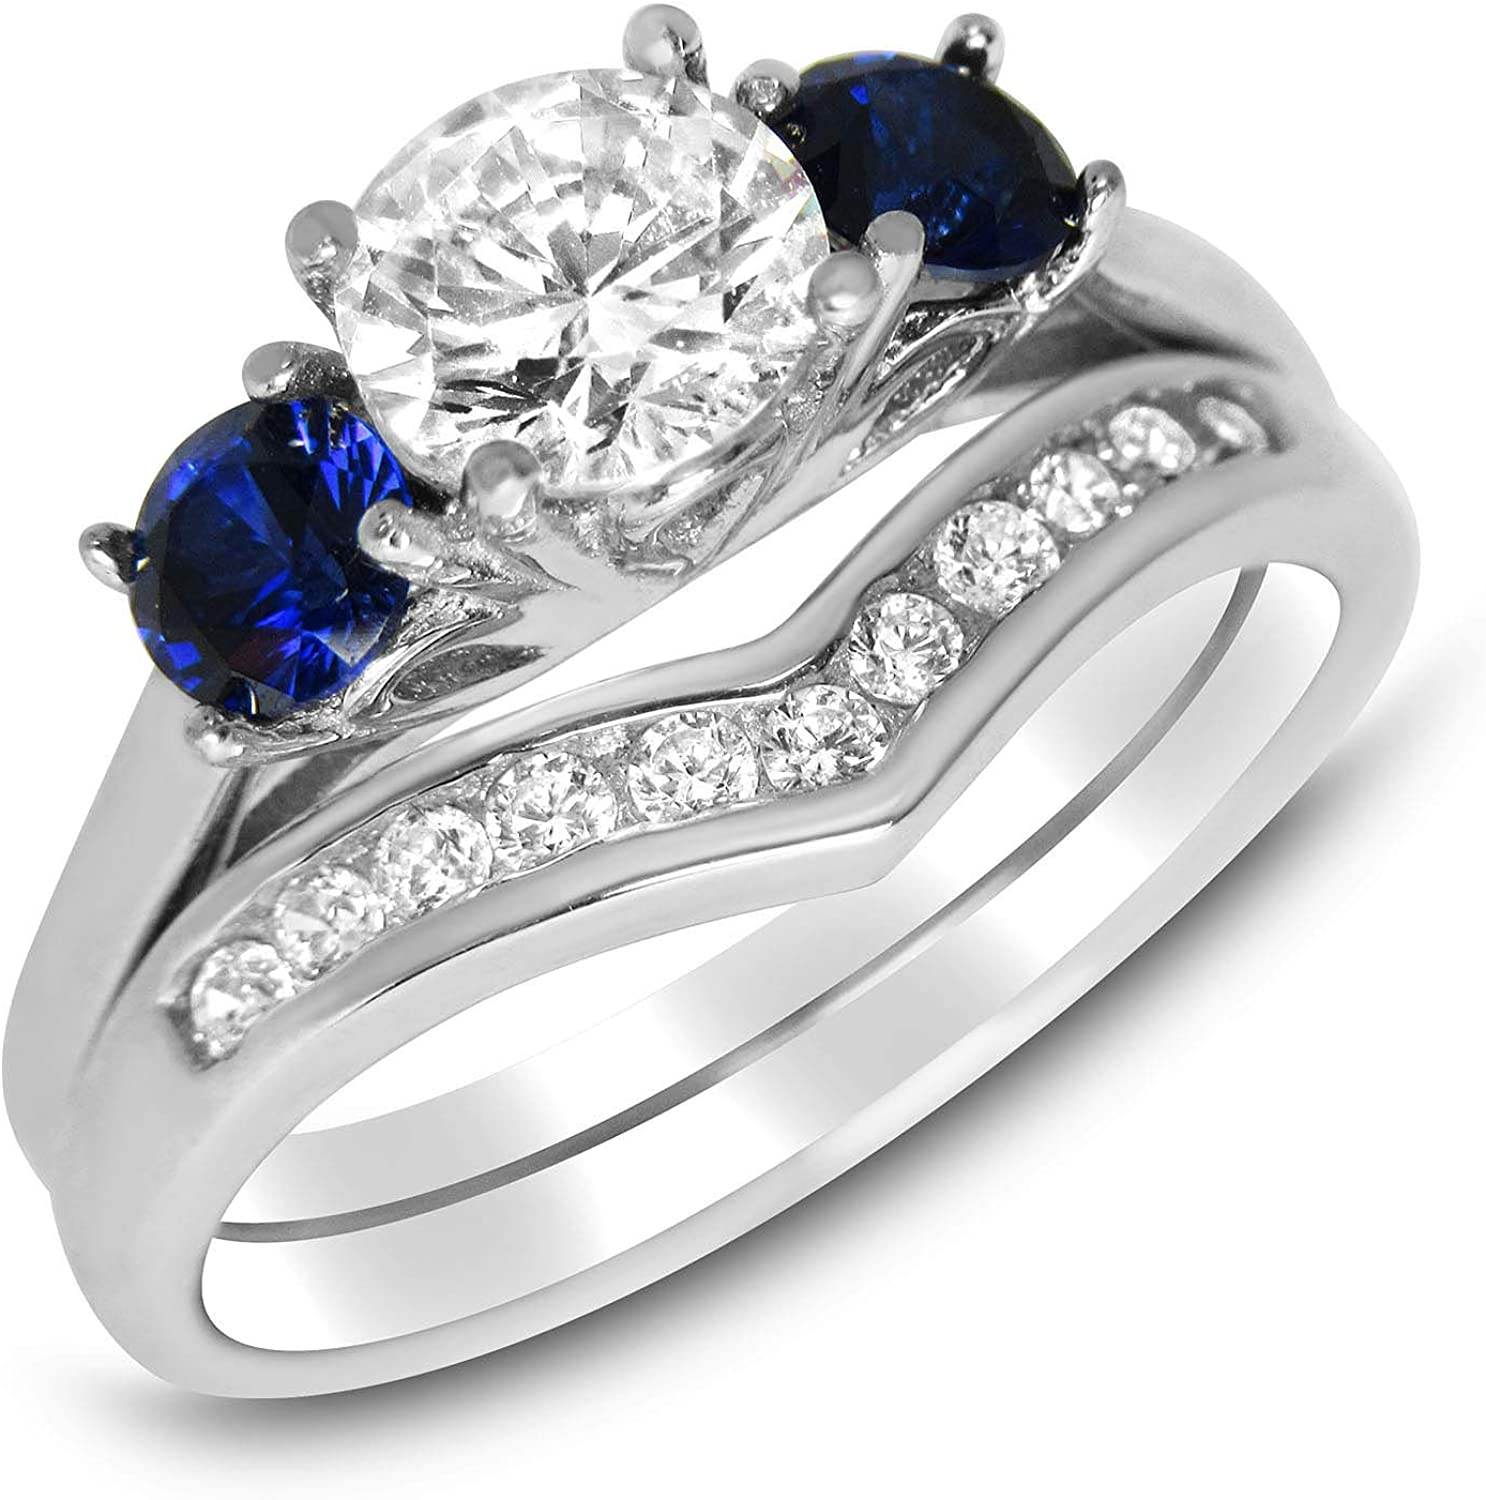 Birthday Gift For Her 10K Gold And Blue Sapphire Gemstone Ring Size 5.0 Estate Womens Blue Stone Solitaire Band Ring Anniversary